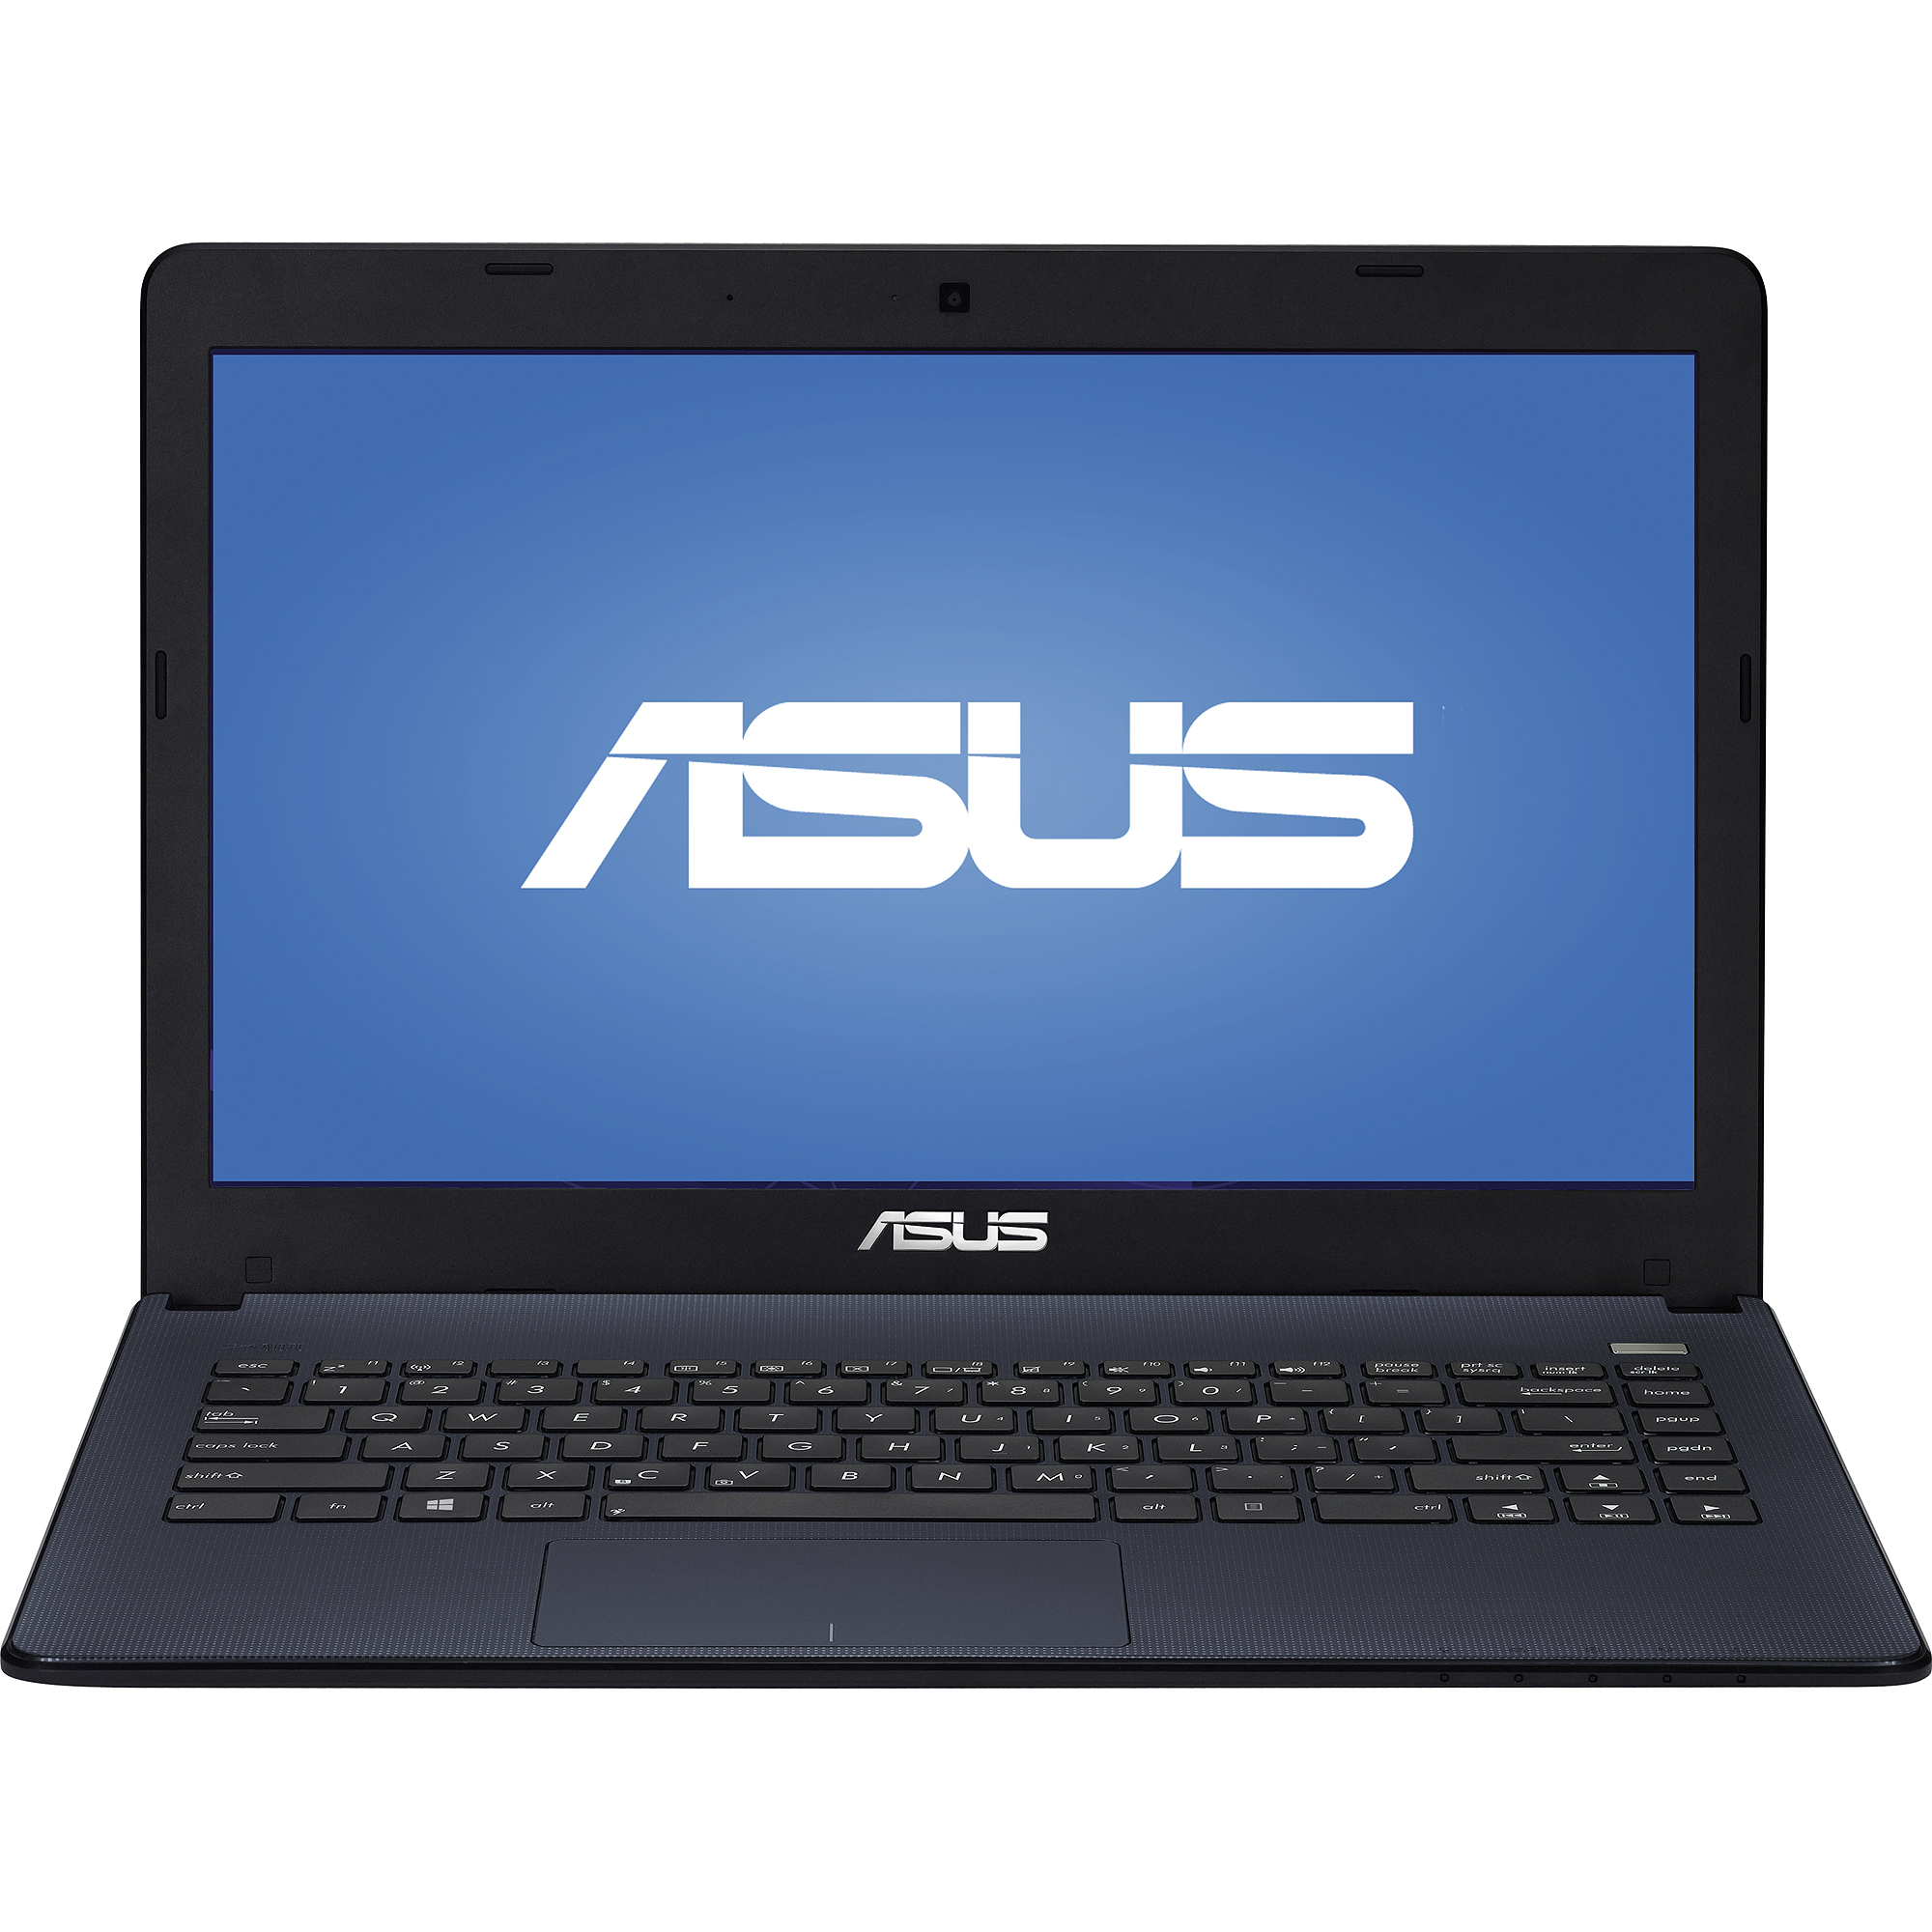 Asus X401A Notebook Virtual Camera Drivers Windows